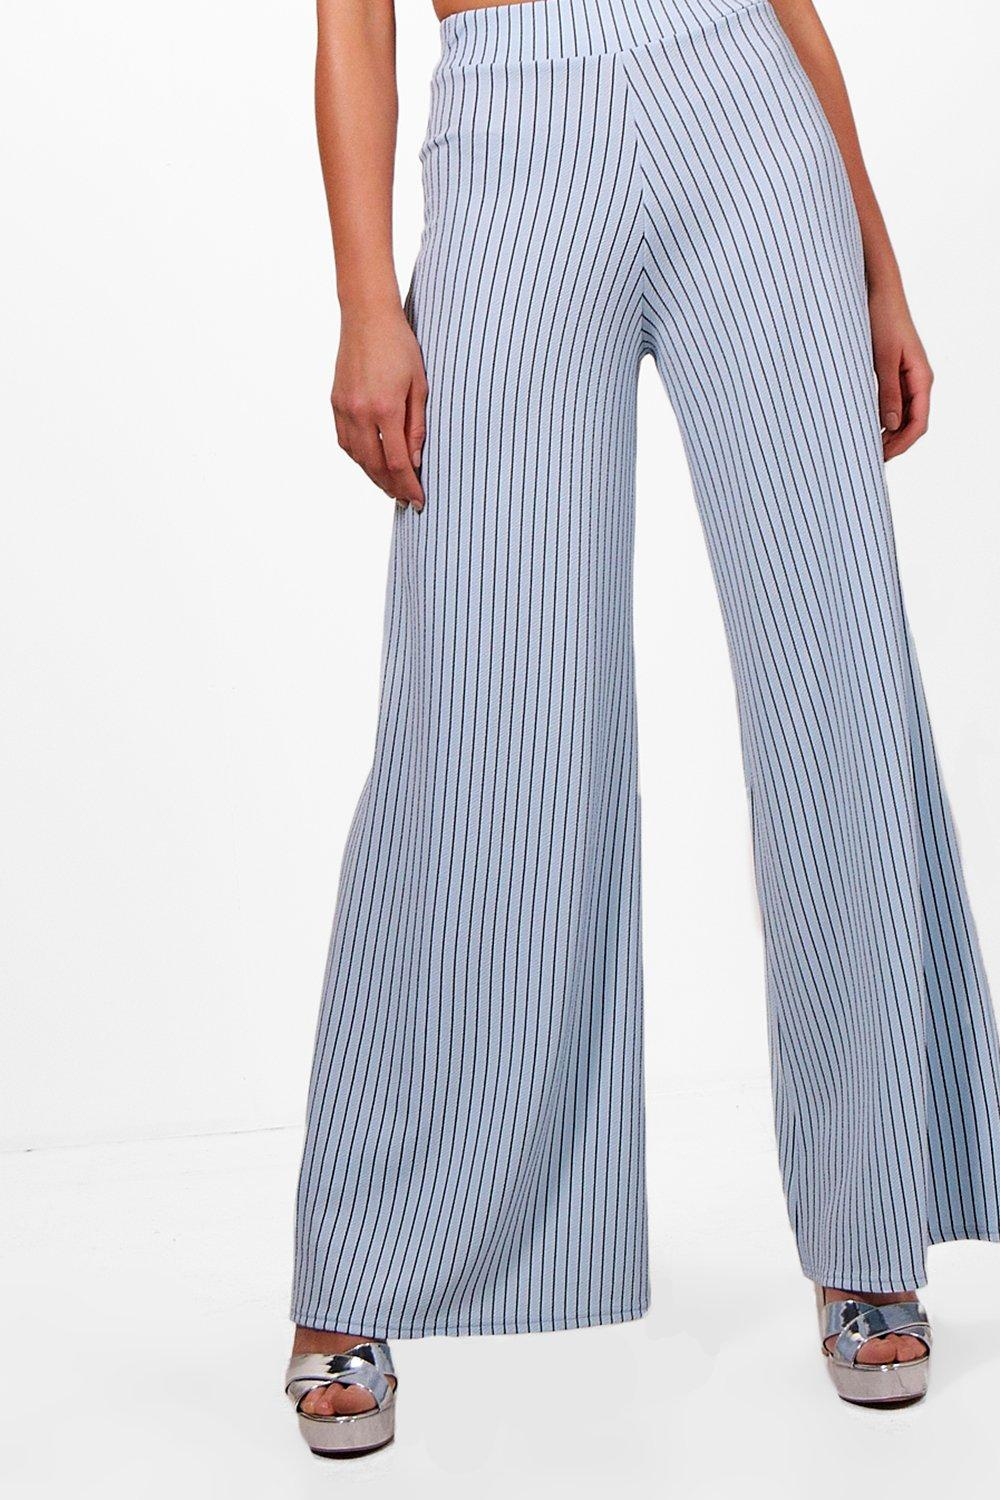 sky Co Bralet Pinstripe Tall Leg amp; Trouser ord qBHxF07w